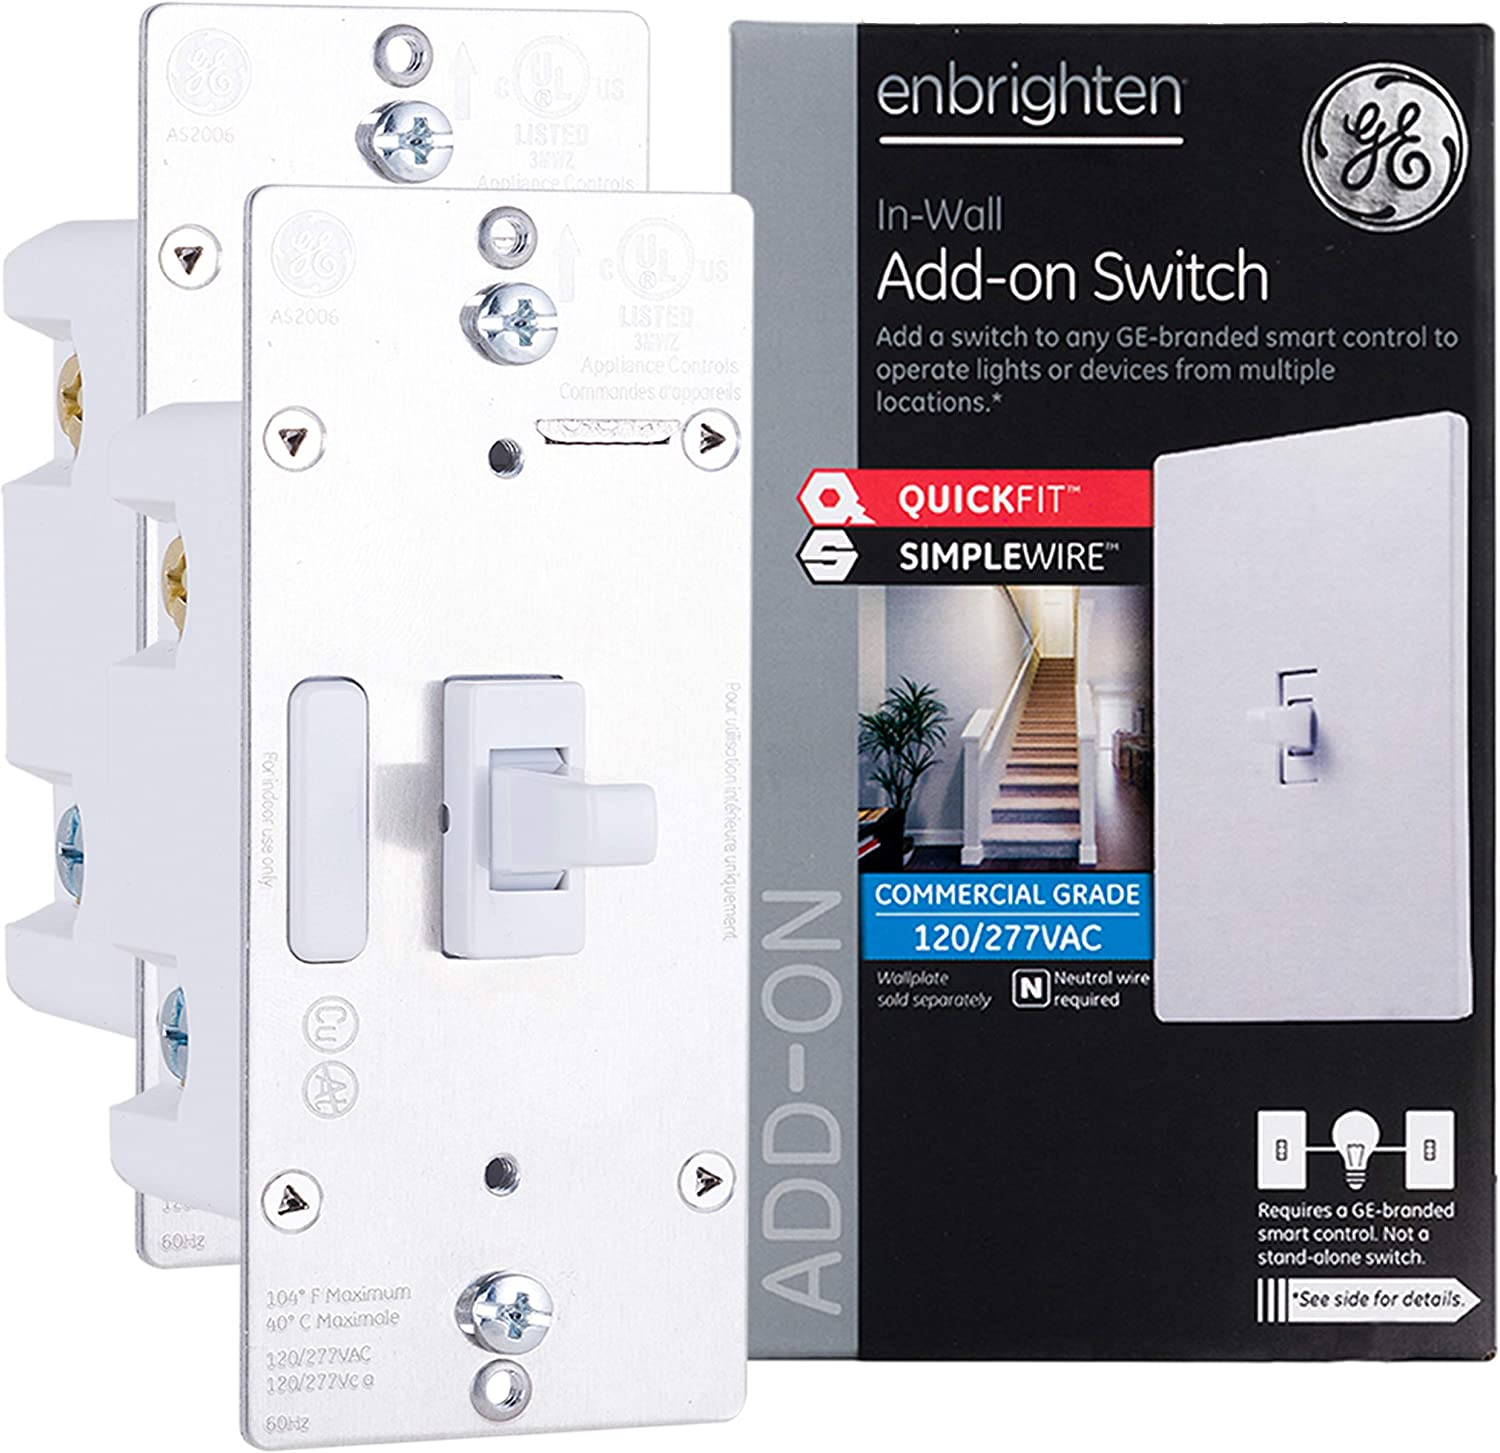 GE Enbrighten Add-On Switch 2-pack with QuickFit and SimpleWire, GE Z-Wave/GE Zigbee Smart Lighting Controls, Works with Alexa, Google Assistant, NOT A STANDALONE SWITCH, Toggle, 47895,White 2-pack